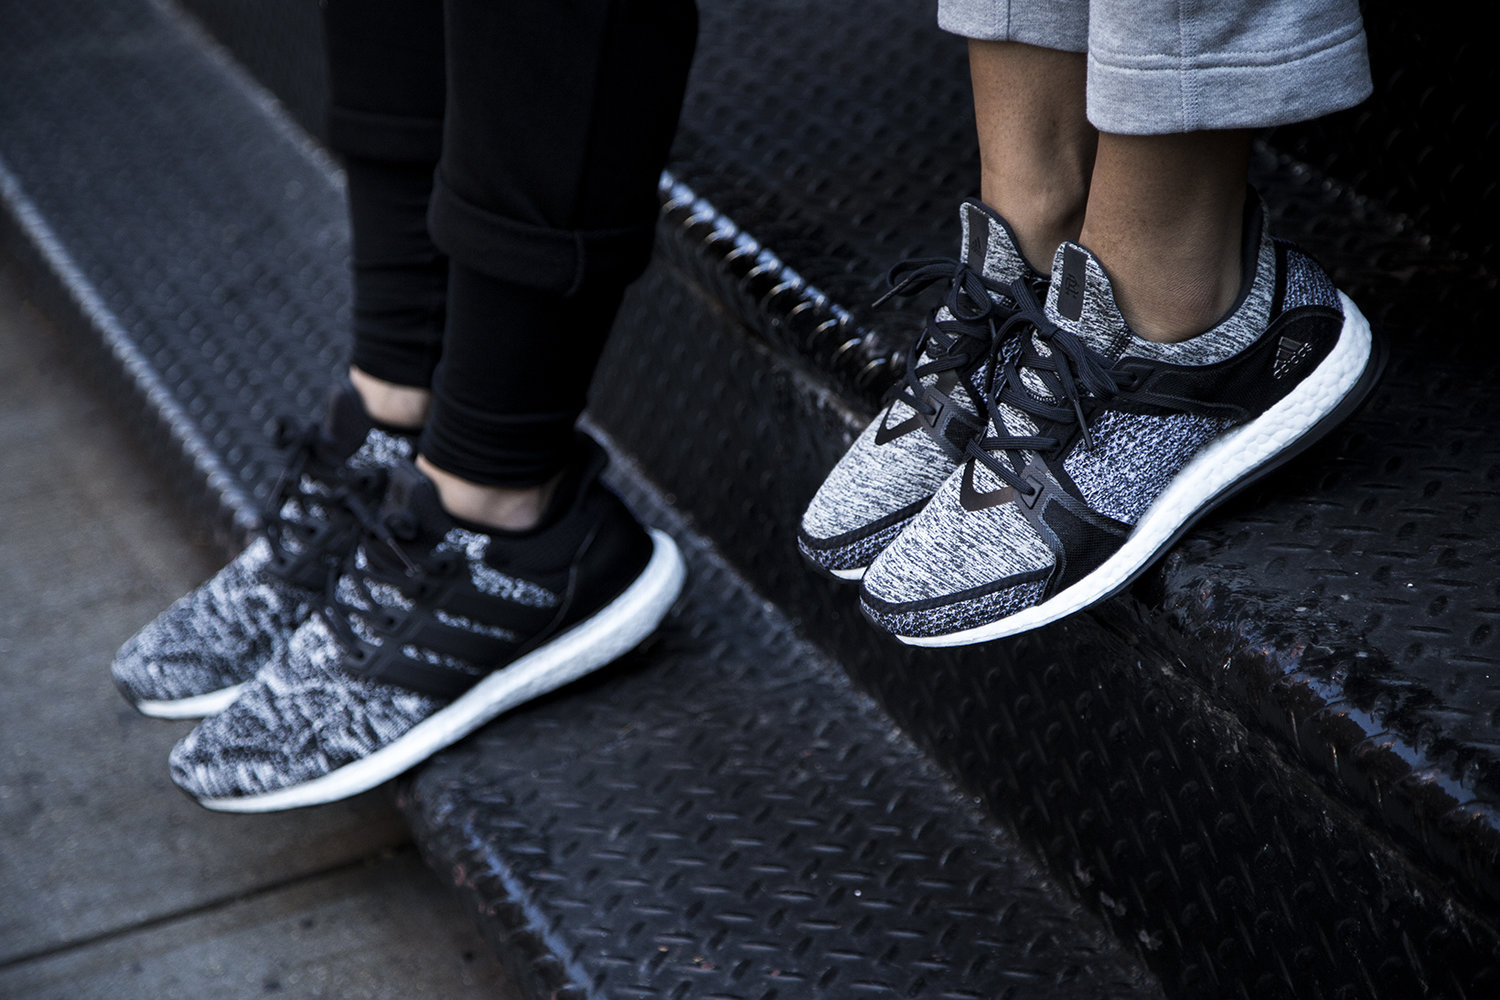 hot sale online 68229 f0c64 All Eyes On The Adidas x Reigning Champ PureBOOST X Trainer